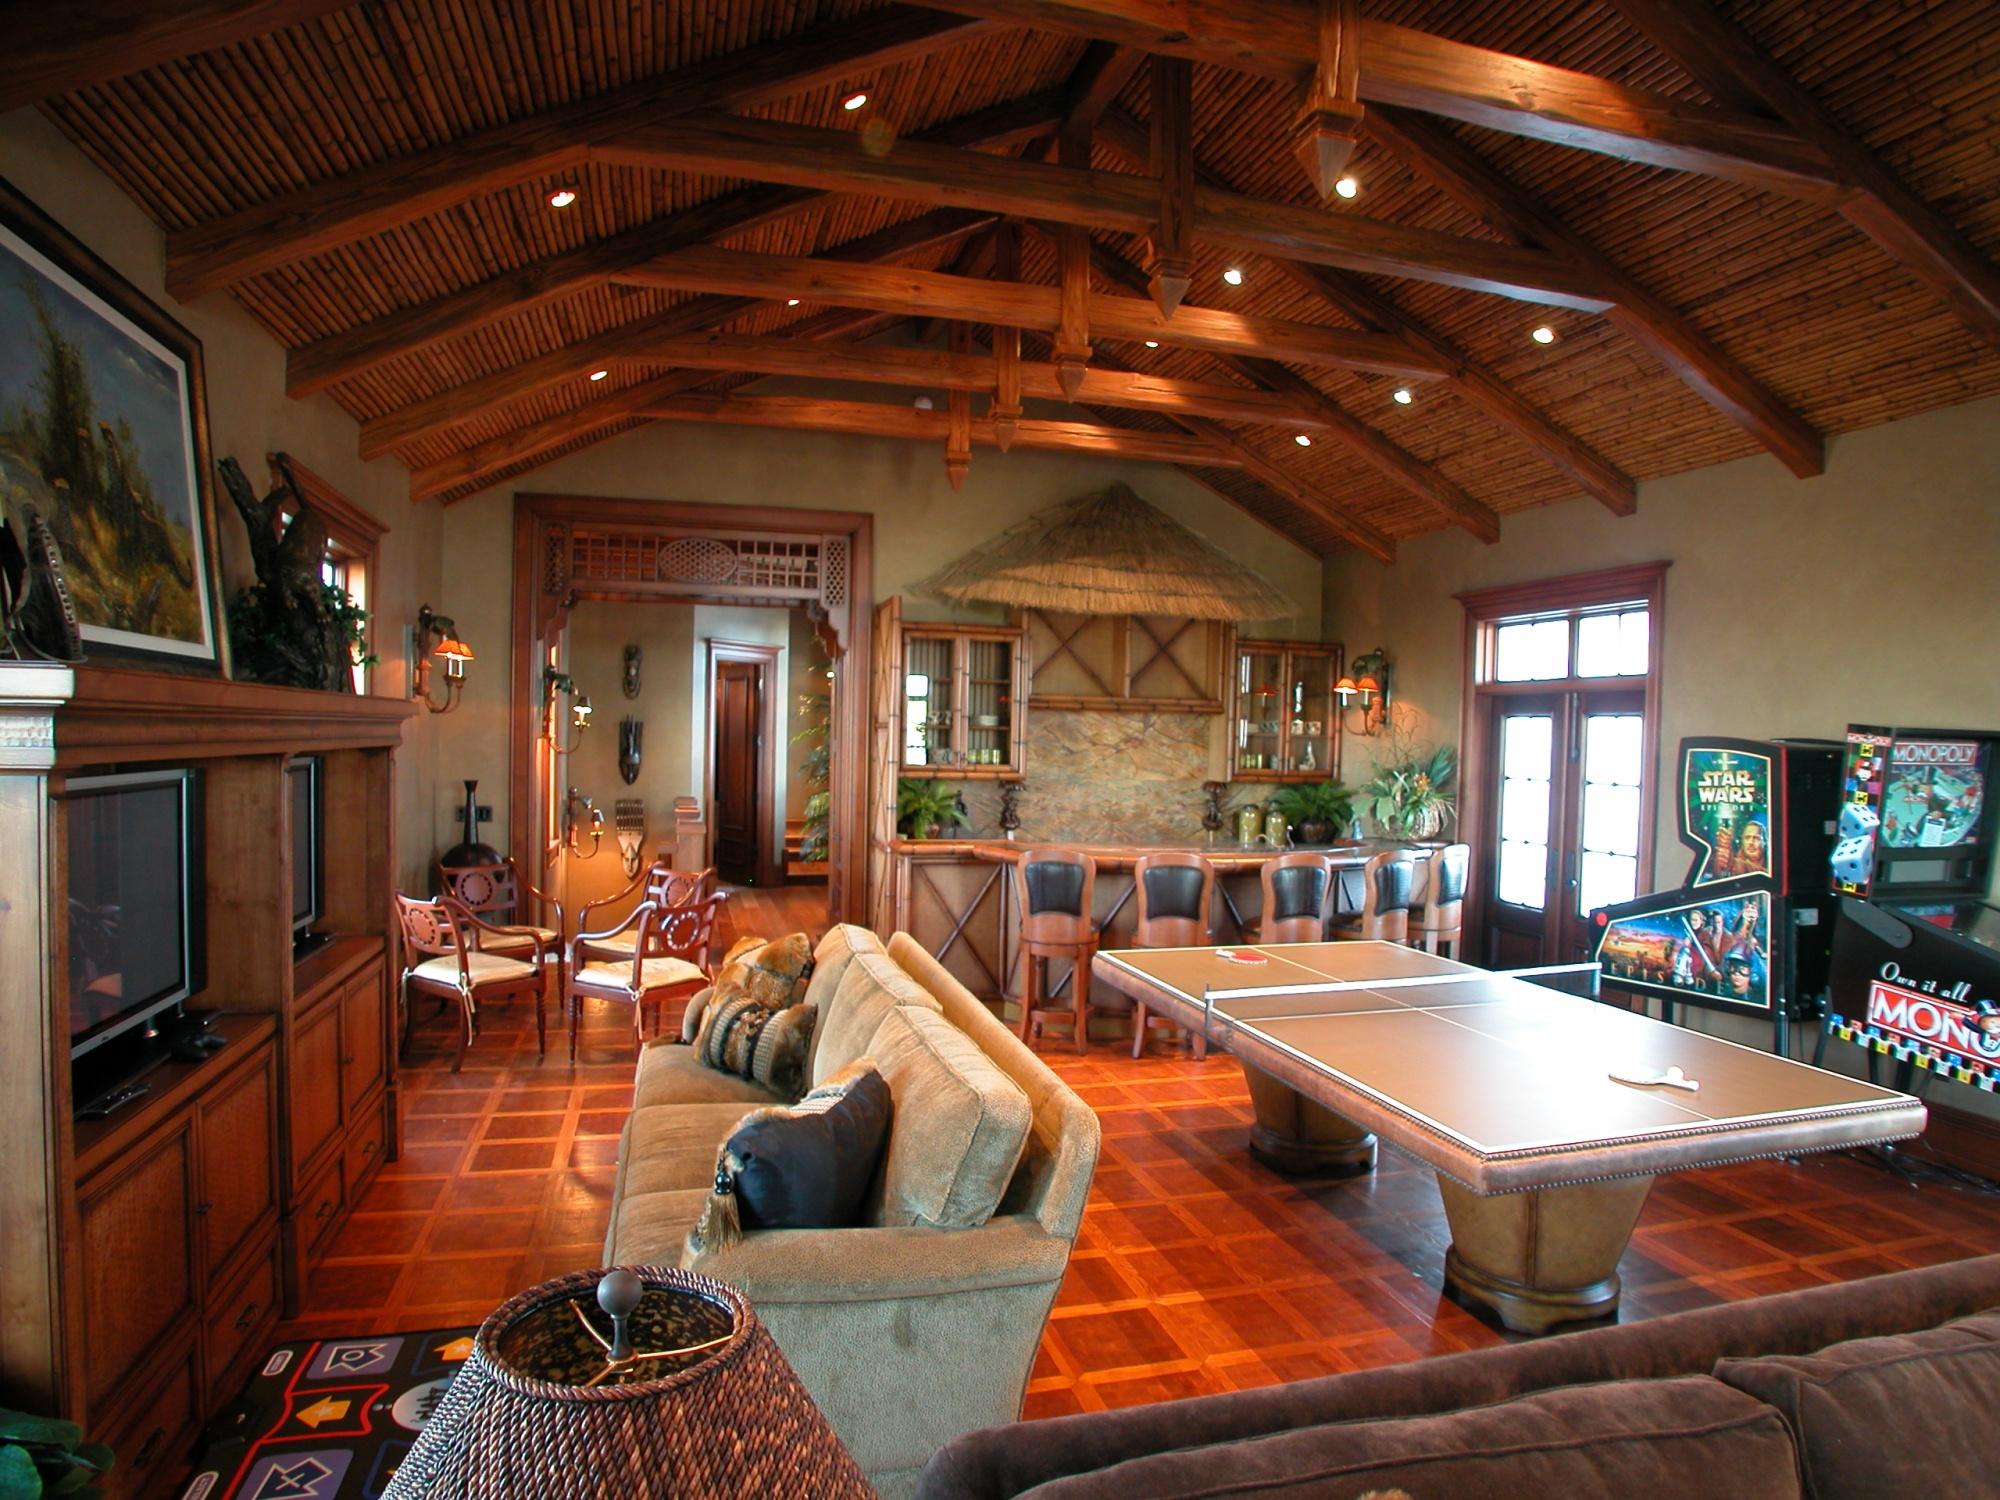 The children's playroom features hand carved pine beams.